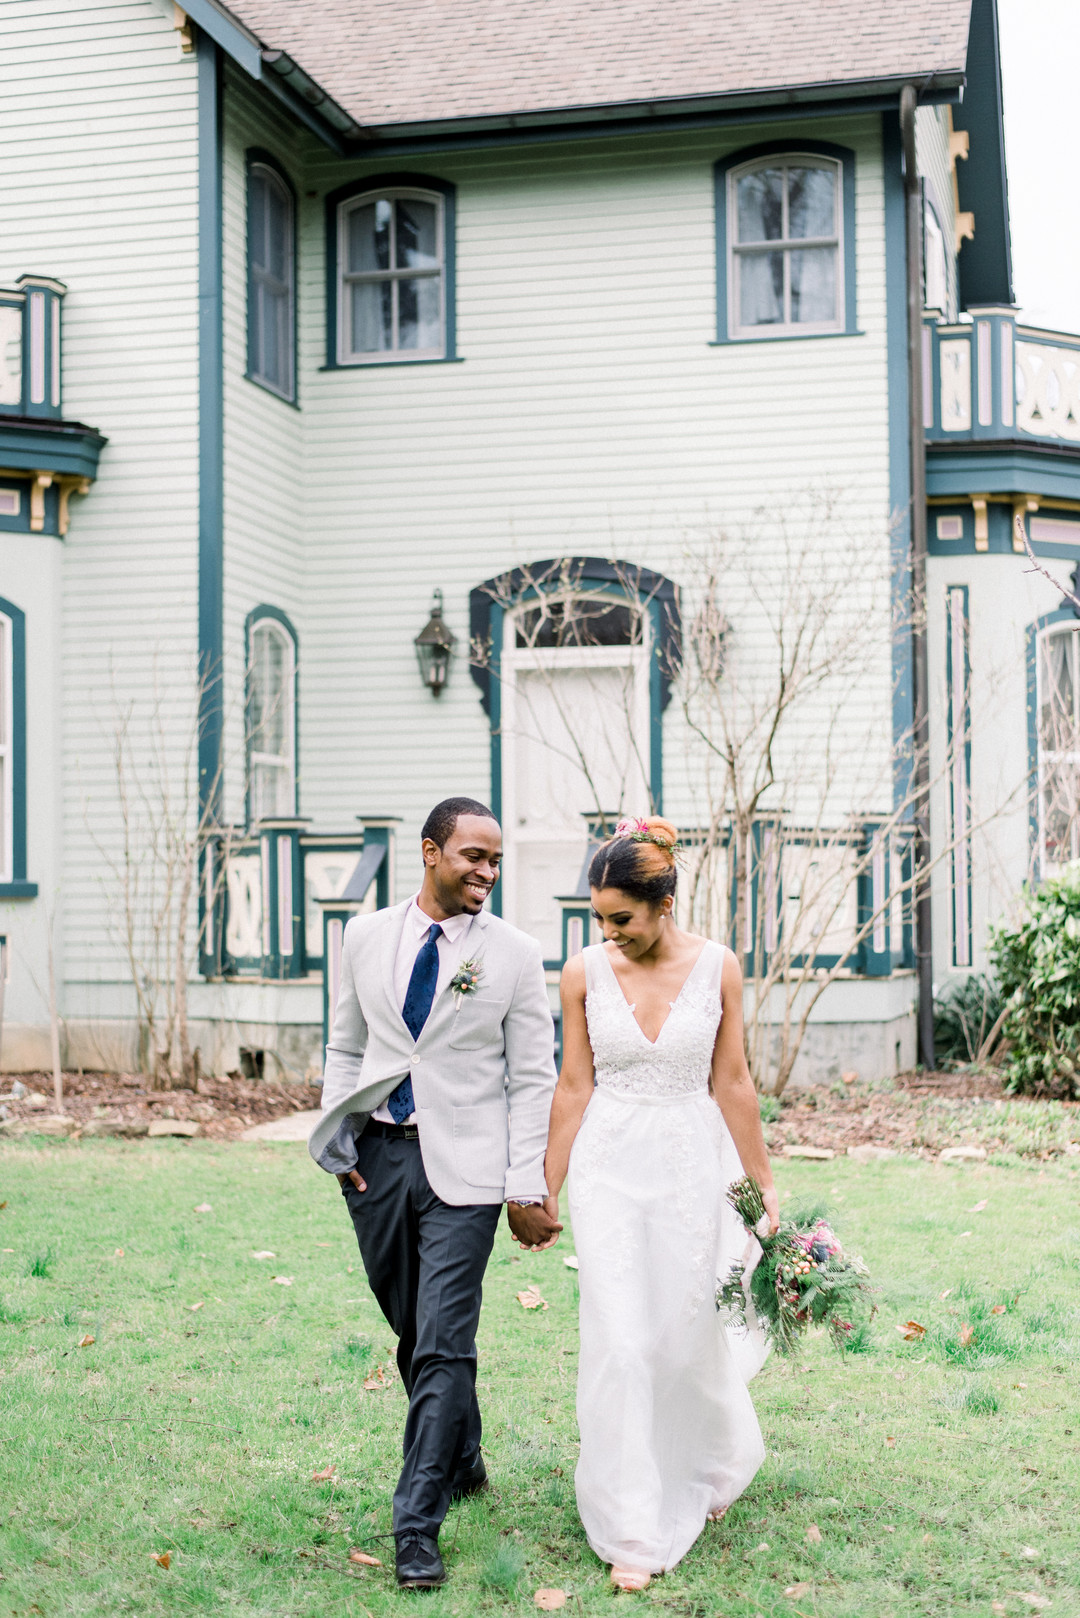 ngfqk8e9mm043jur4c85_big Hot Springs, NC Wedding Inspiration at Mountain Magnolia Inn